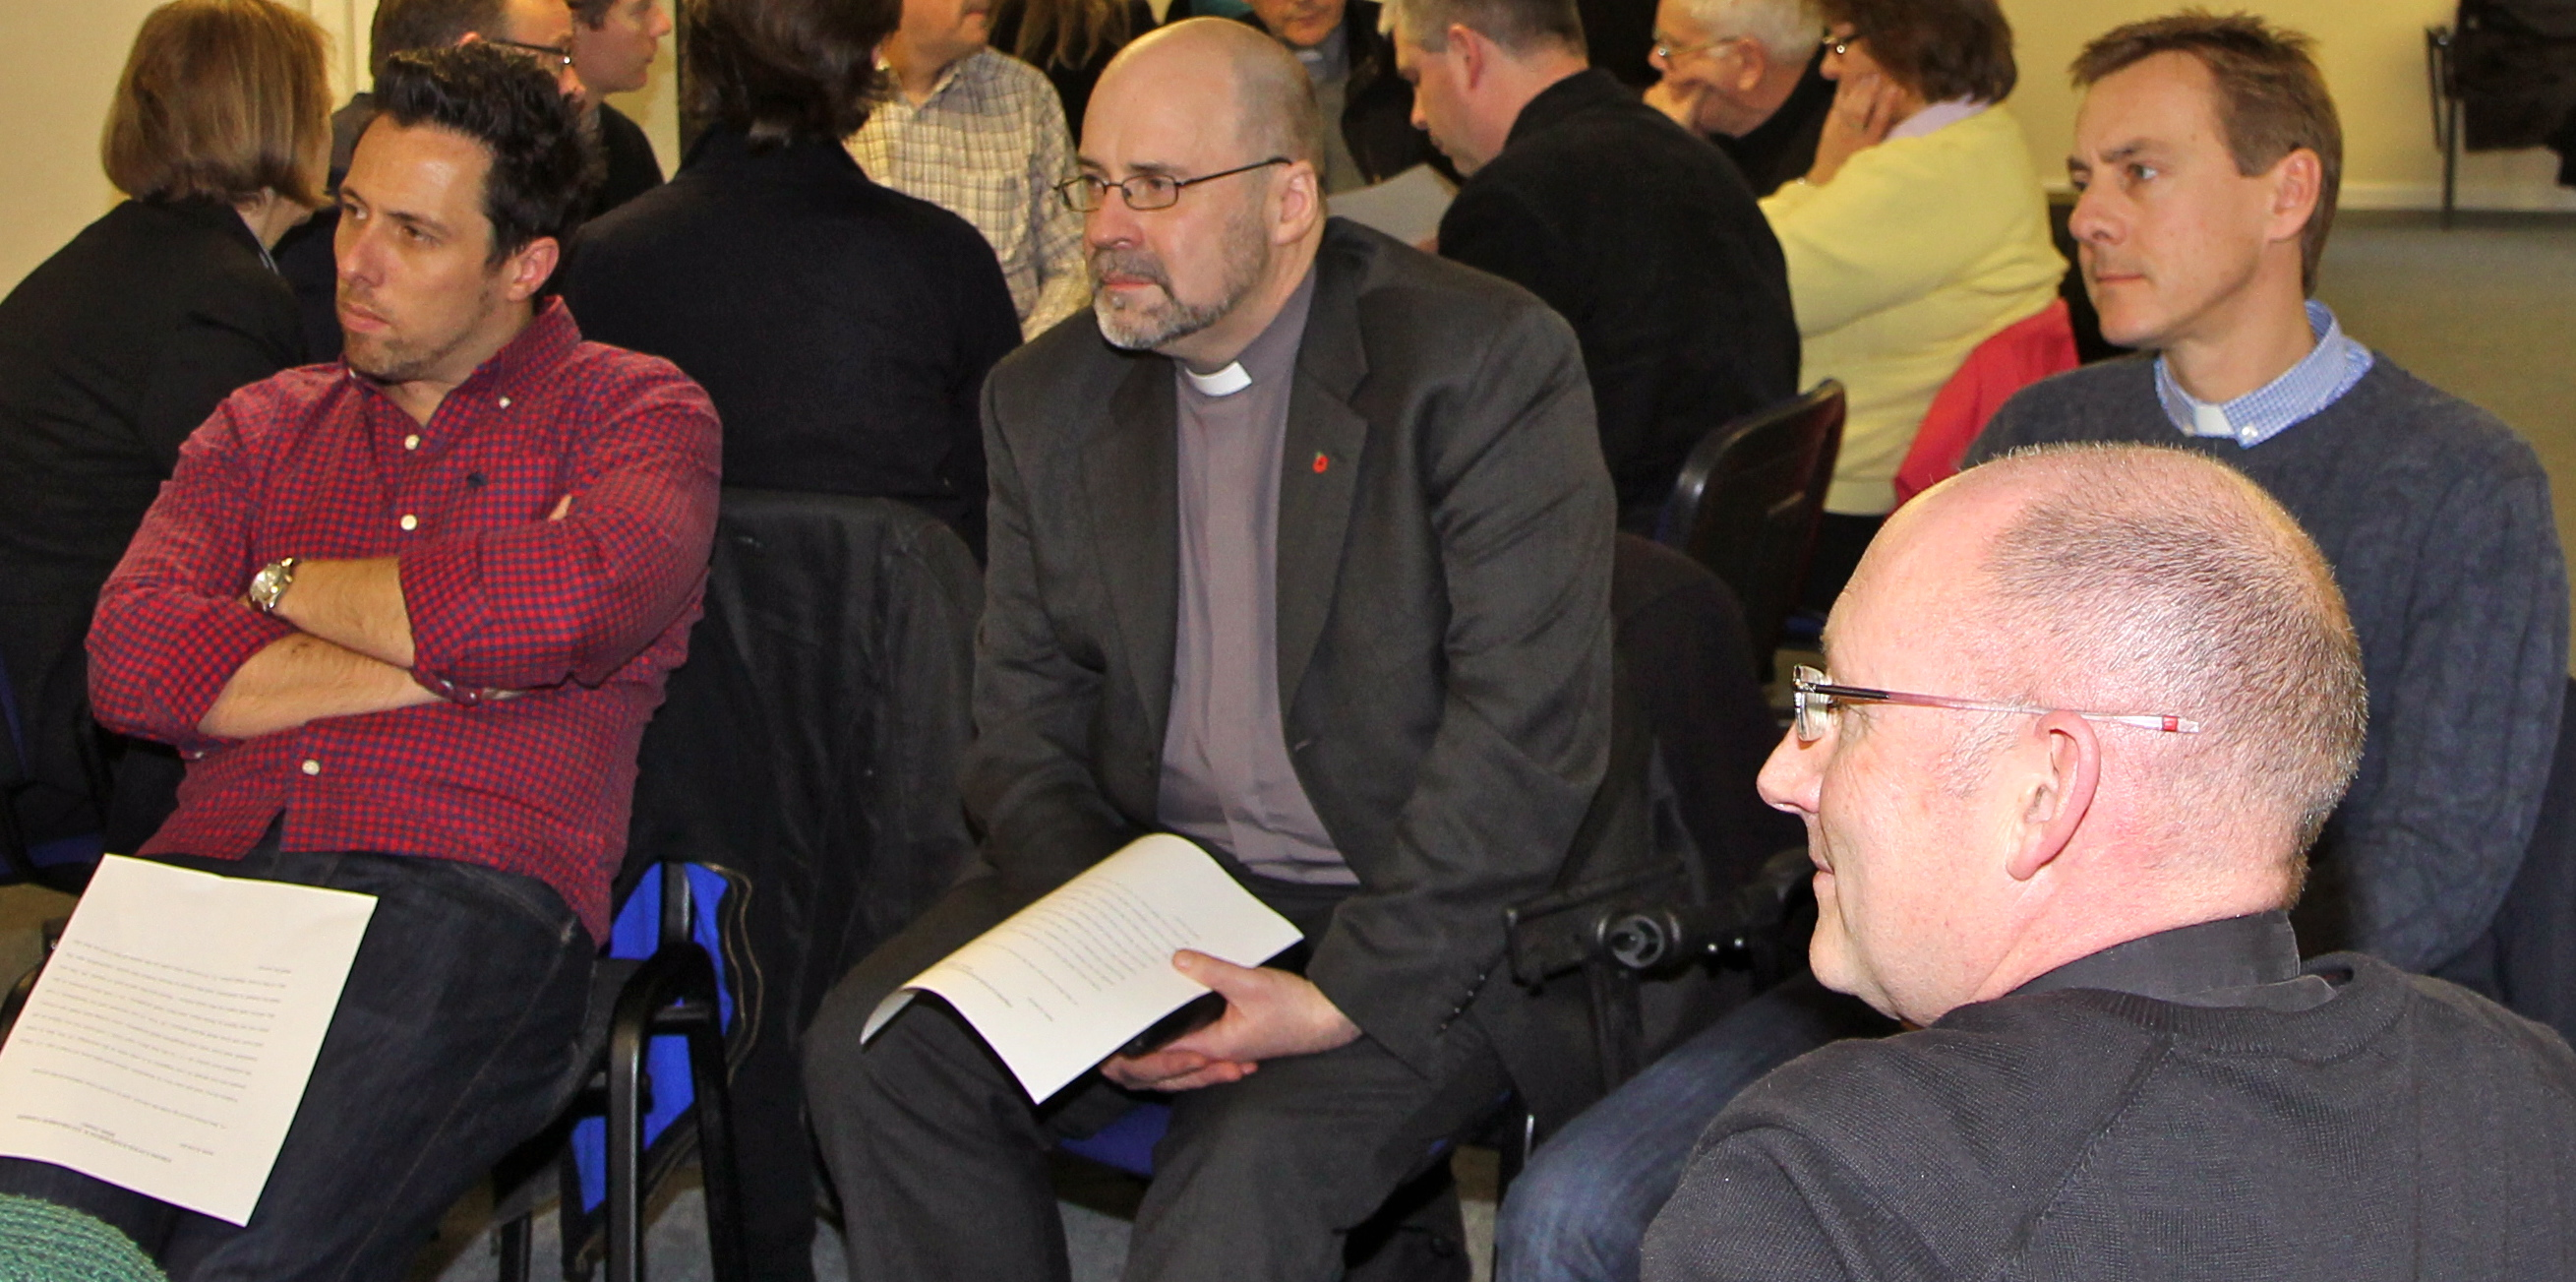 Clergy at diocesan development day for Dublin & Glendalough